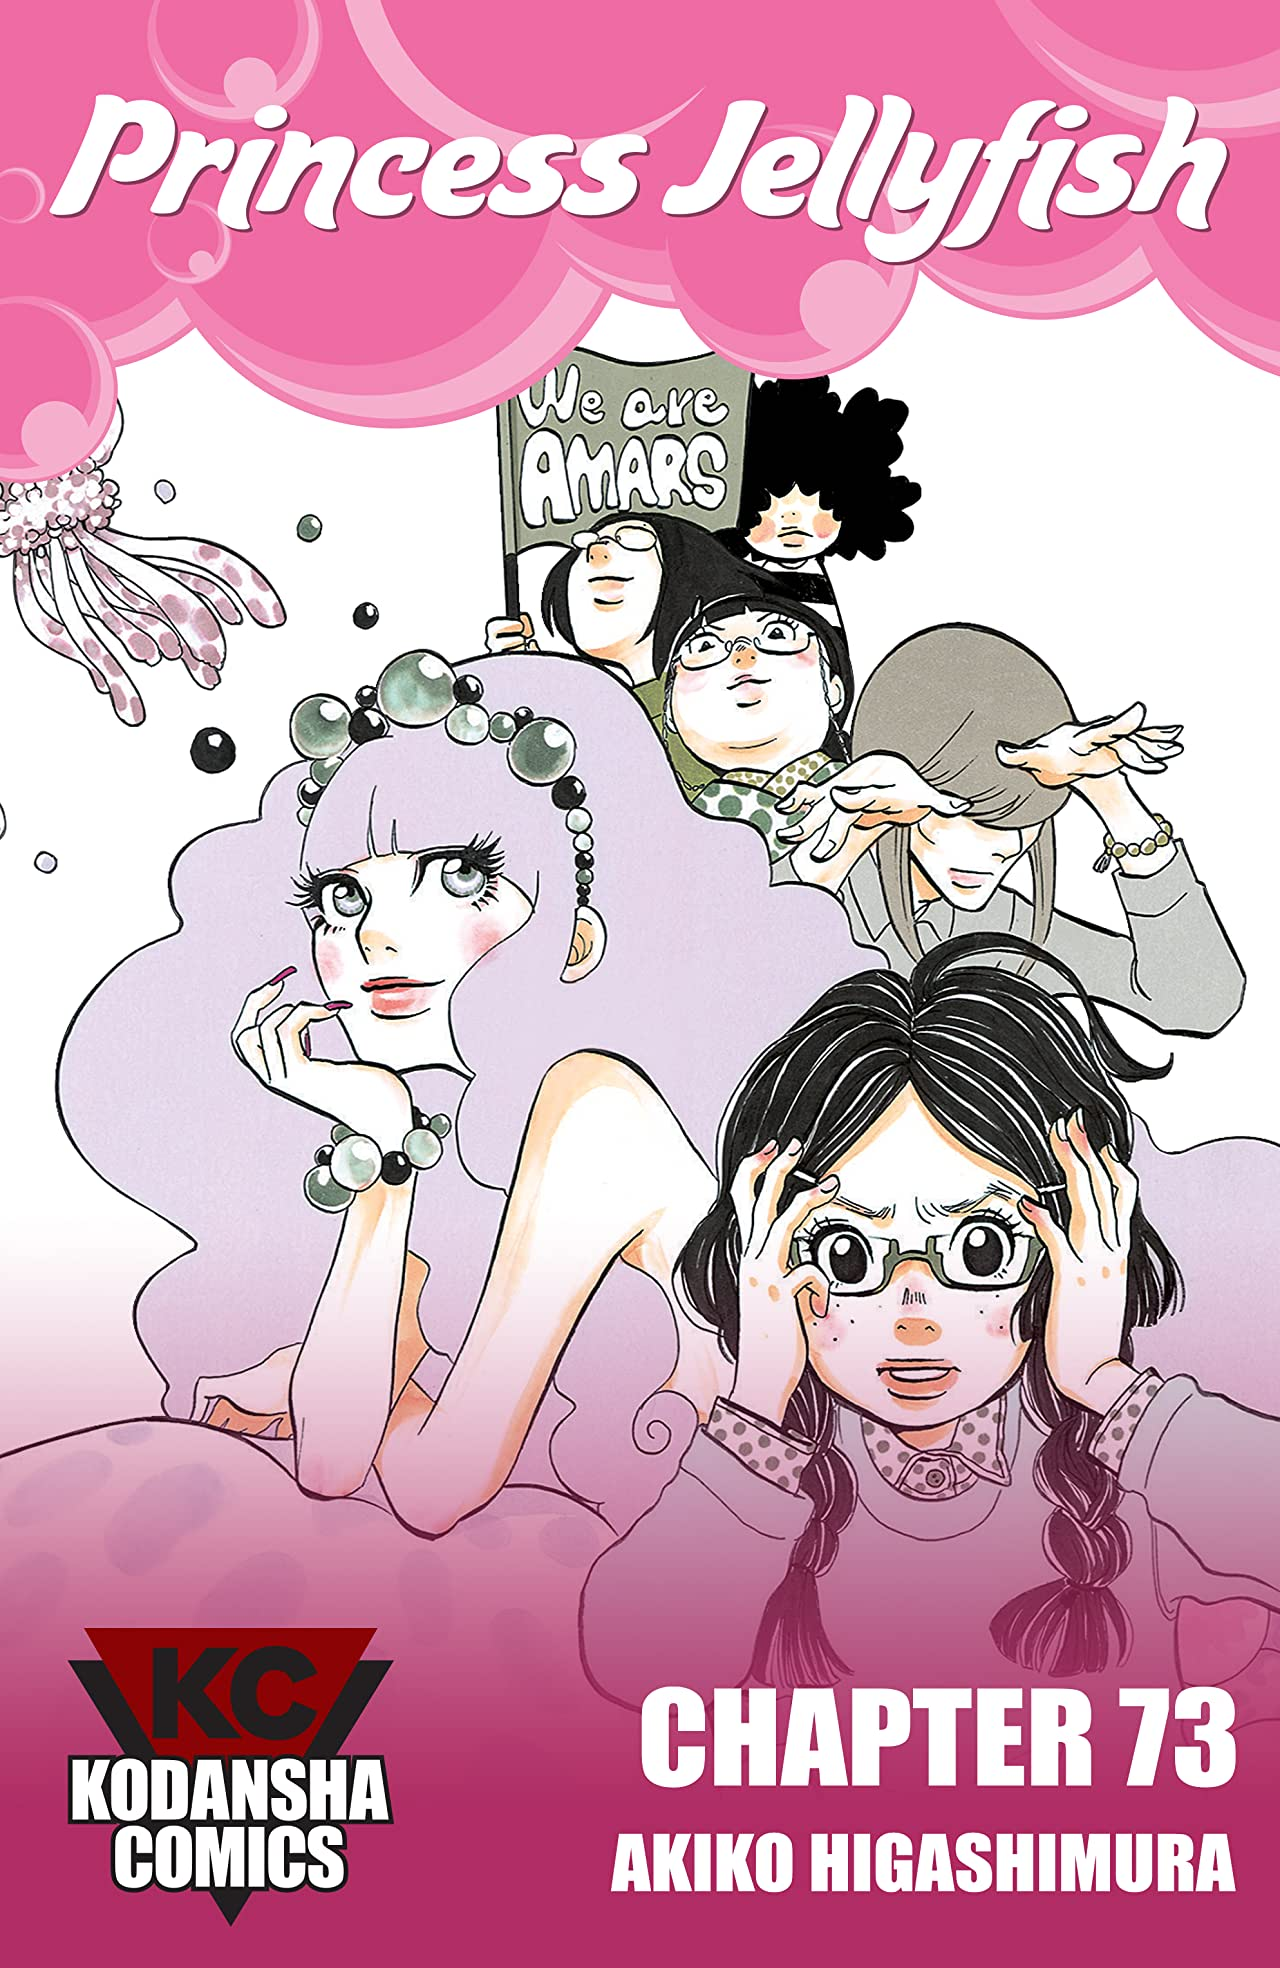 Princess Jellyfish #73